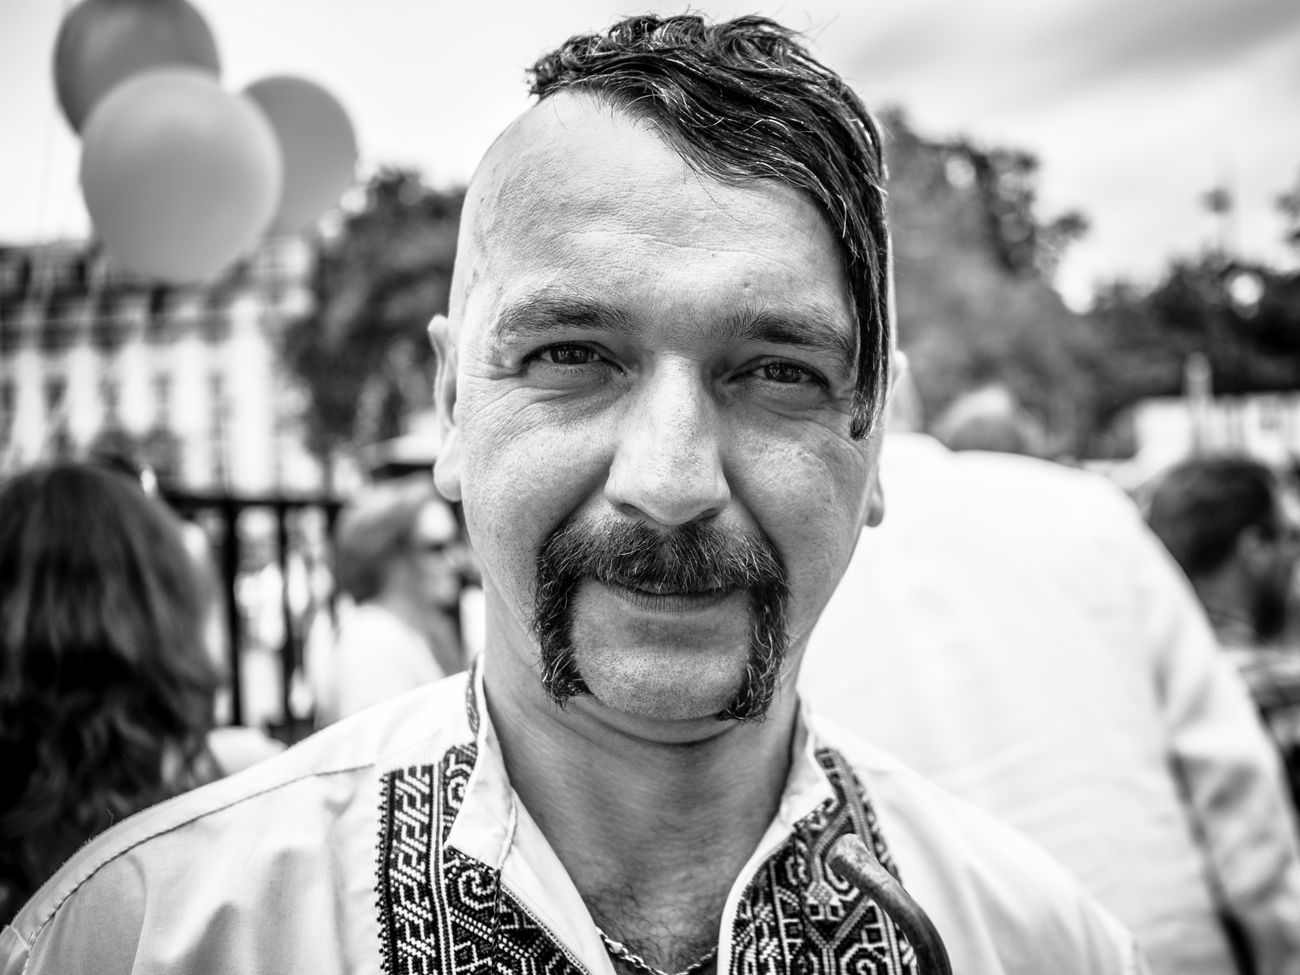 This year I completely missed annual Ukrainian Vyshyvanka March and how lucky I was to bump into this even completely by chance. Kozak Ukraine Vyshyvanka Portrait Human Face Street People Maxgor.com Urban Maxgor Black And White Lifestyles Black And White Photography Rawstreets Monochrome Photography Stranger Street Photography The Portraitist - 2017 EyeEm Awards The Photojournalist - 2017 EyeEm Awards